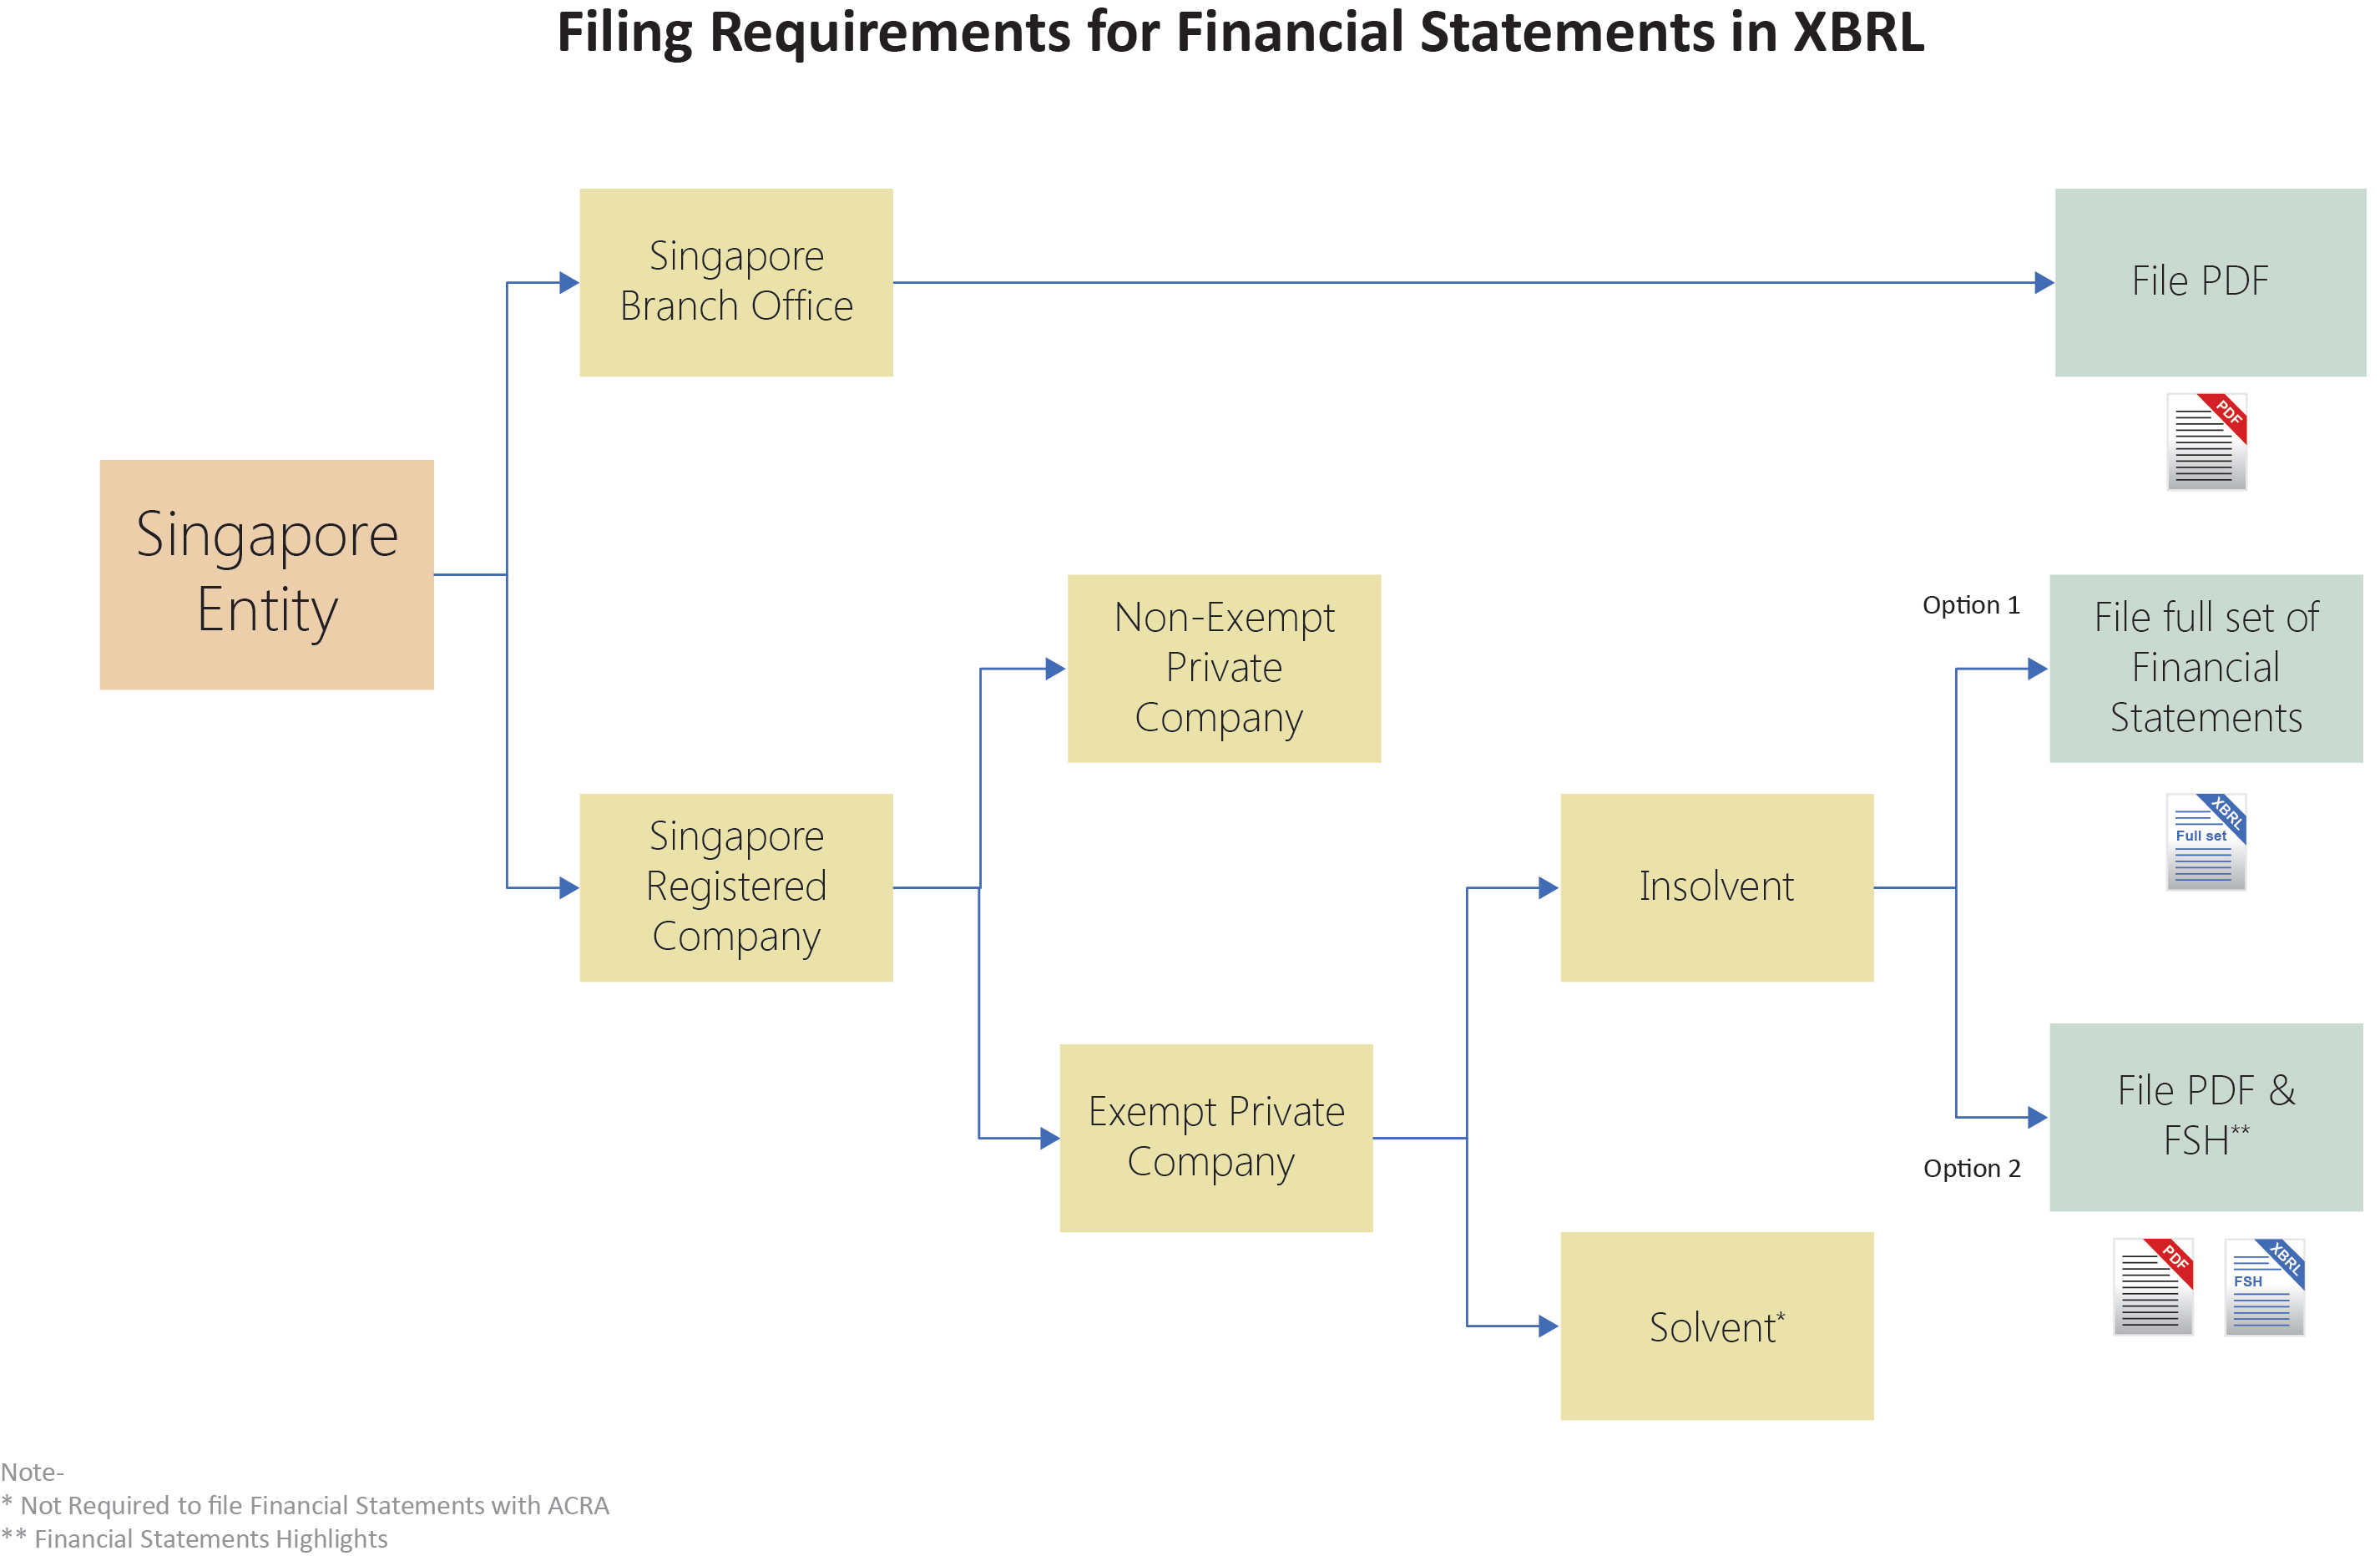 XBRL Filing Services With ACRA